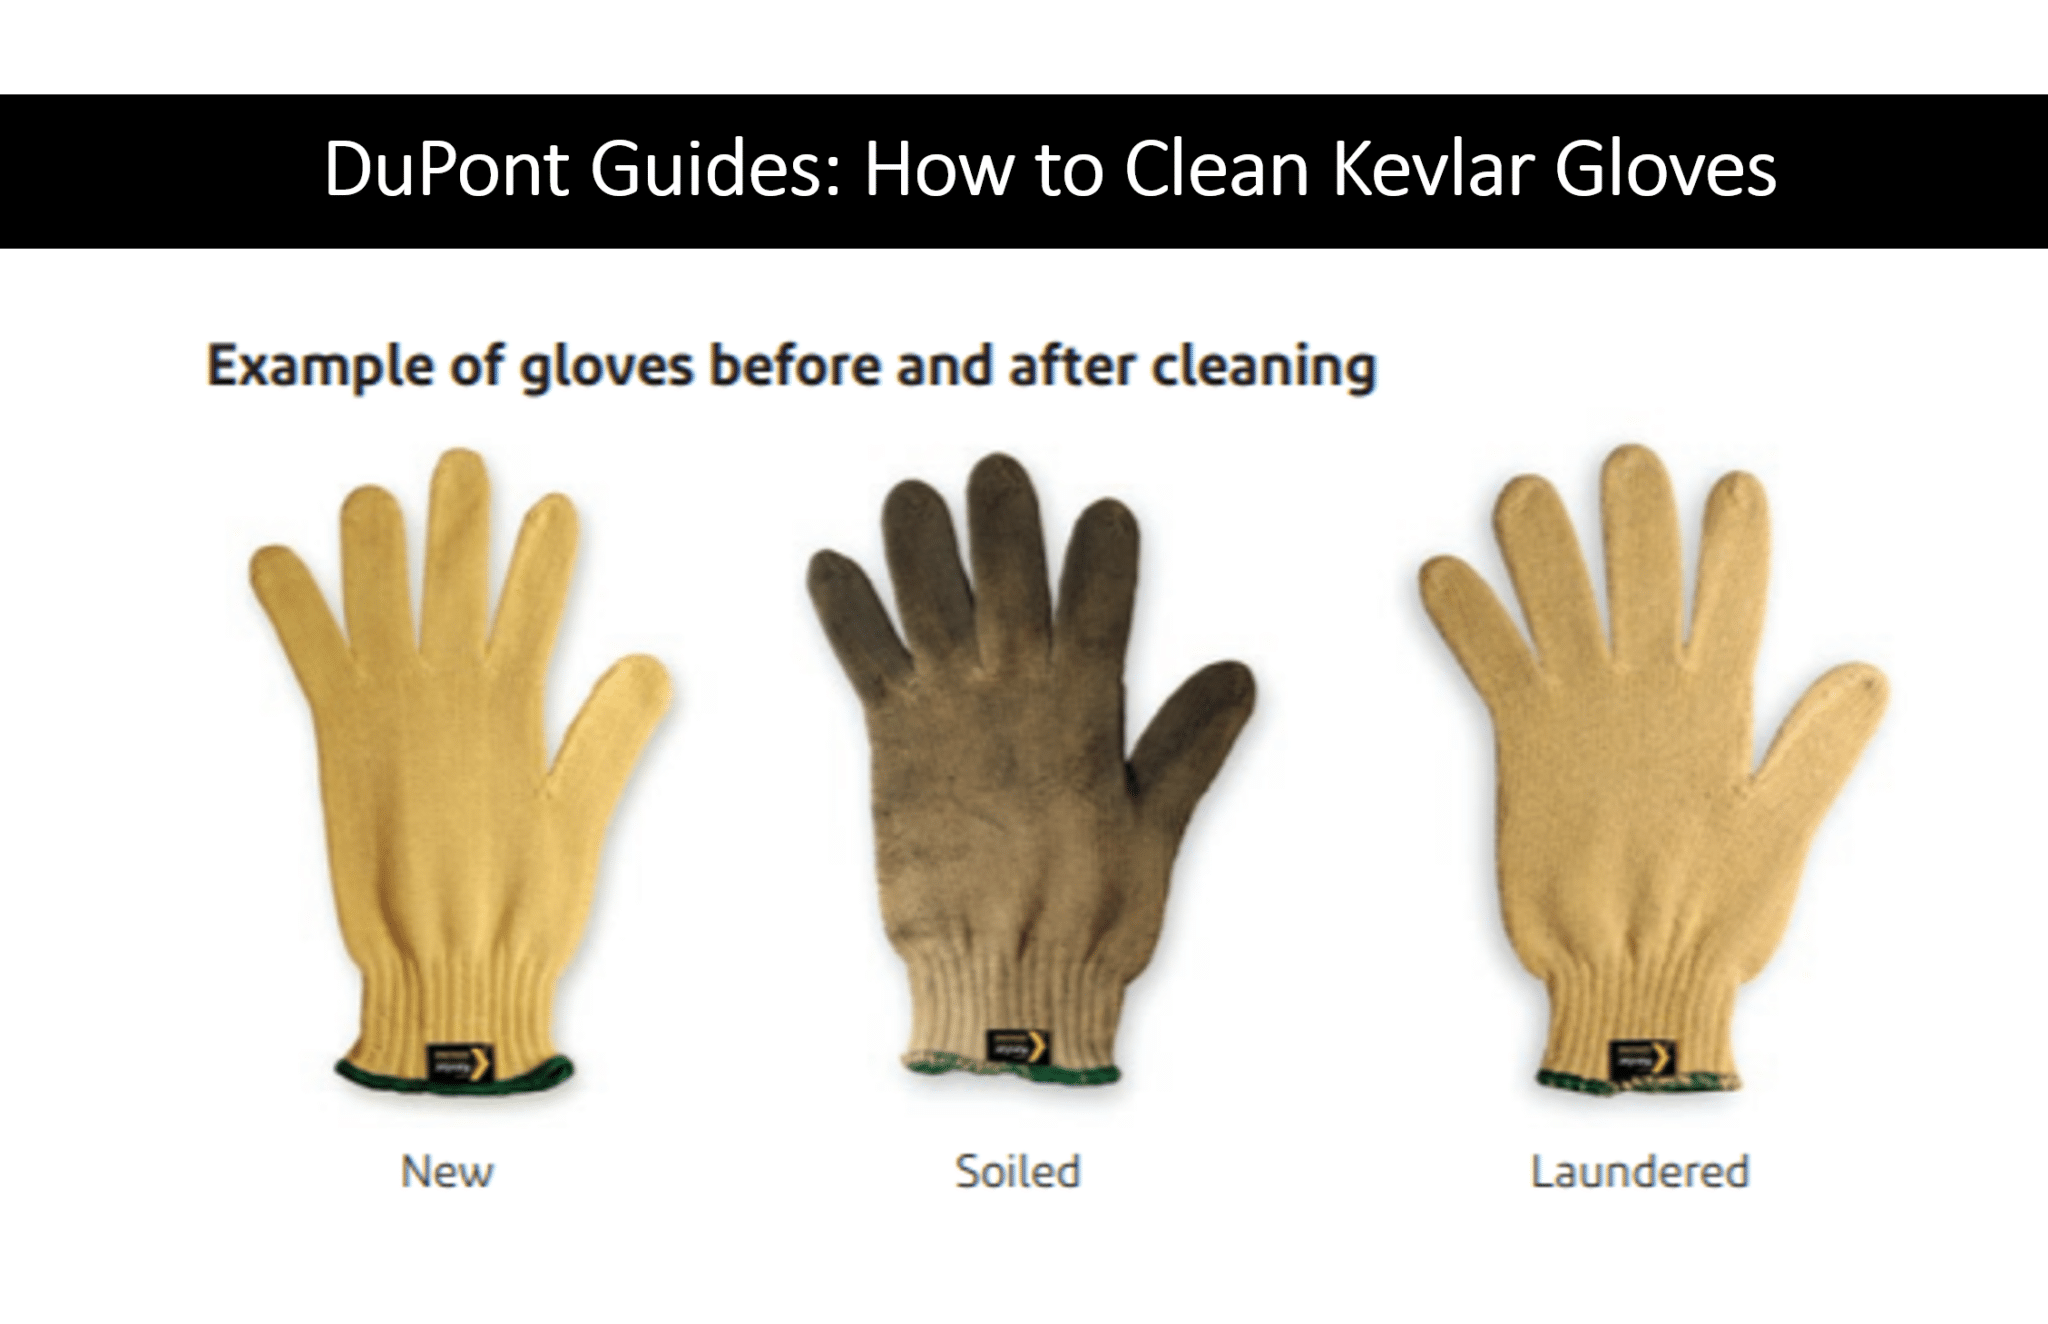 DuPont Kevlar Cut-Resistant Gloves: Laundering Guide Available